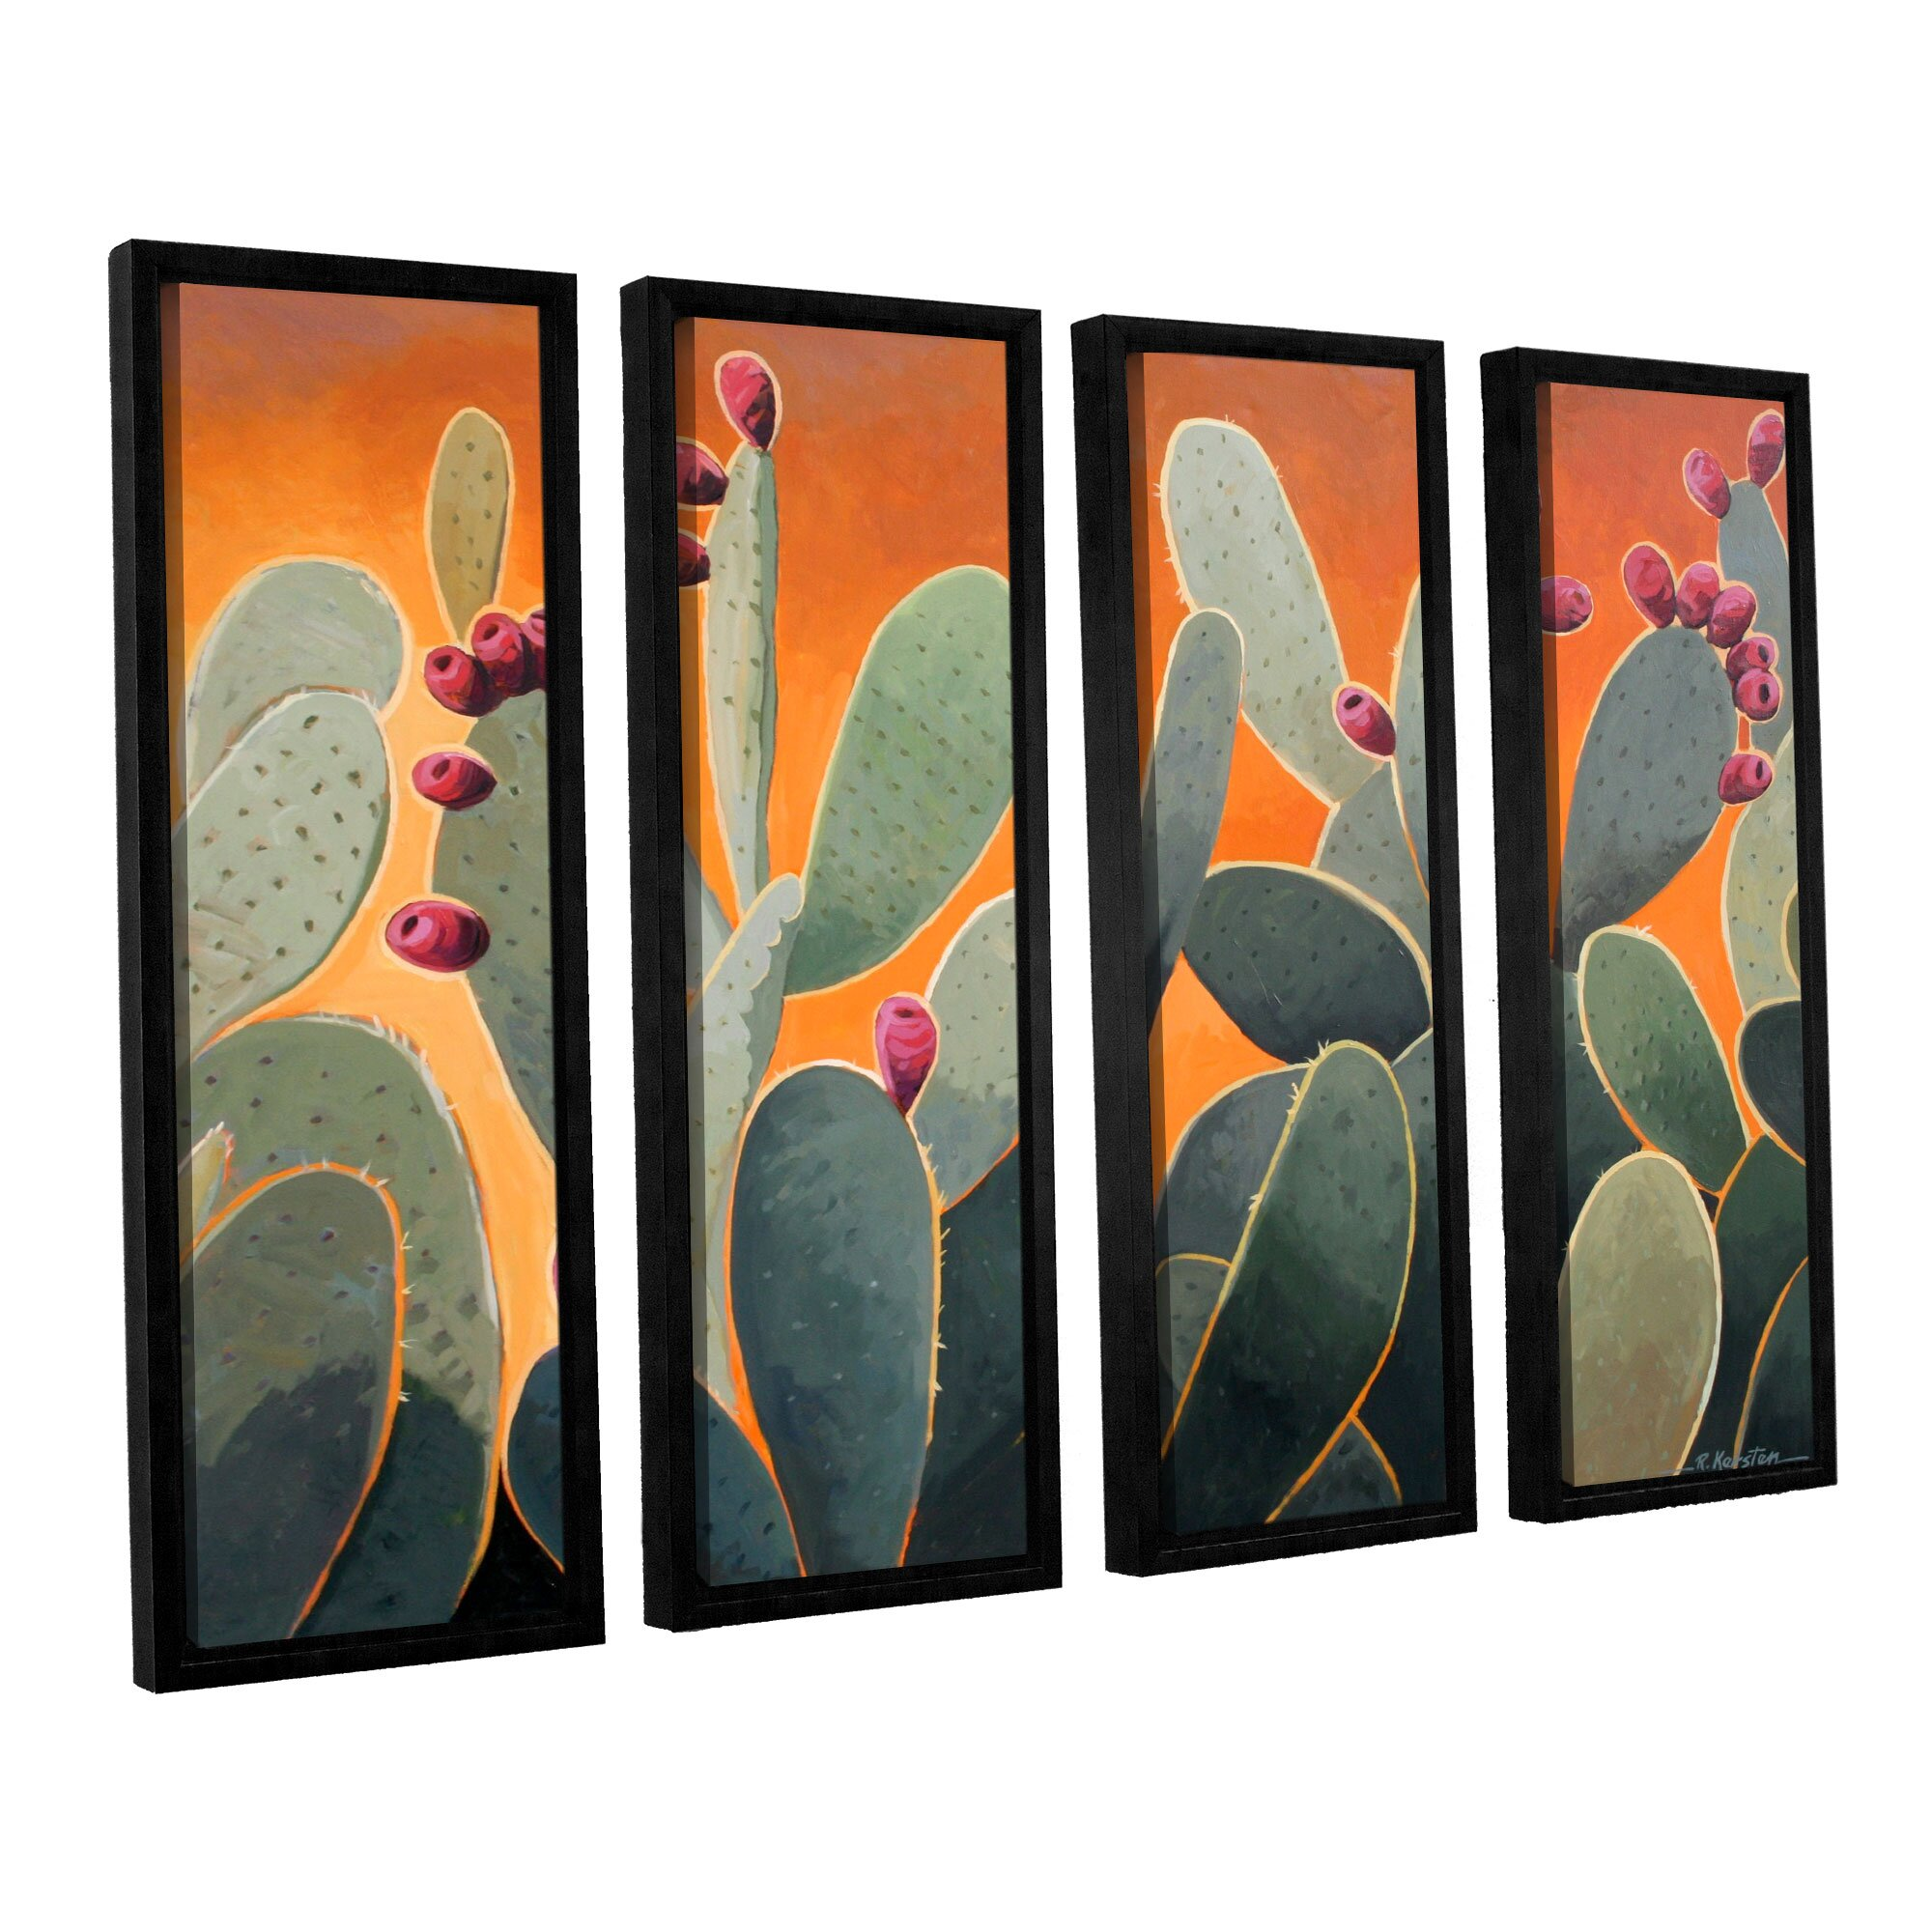 4 Piece Giolla Wall Decor Set : Artwall cactus orange by rick kersten piece framed